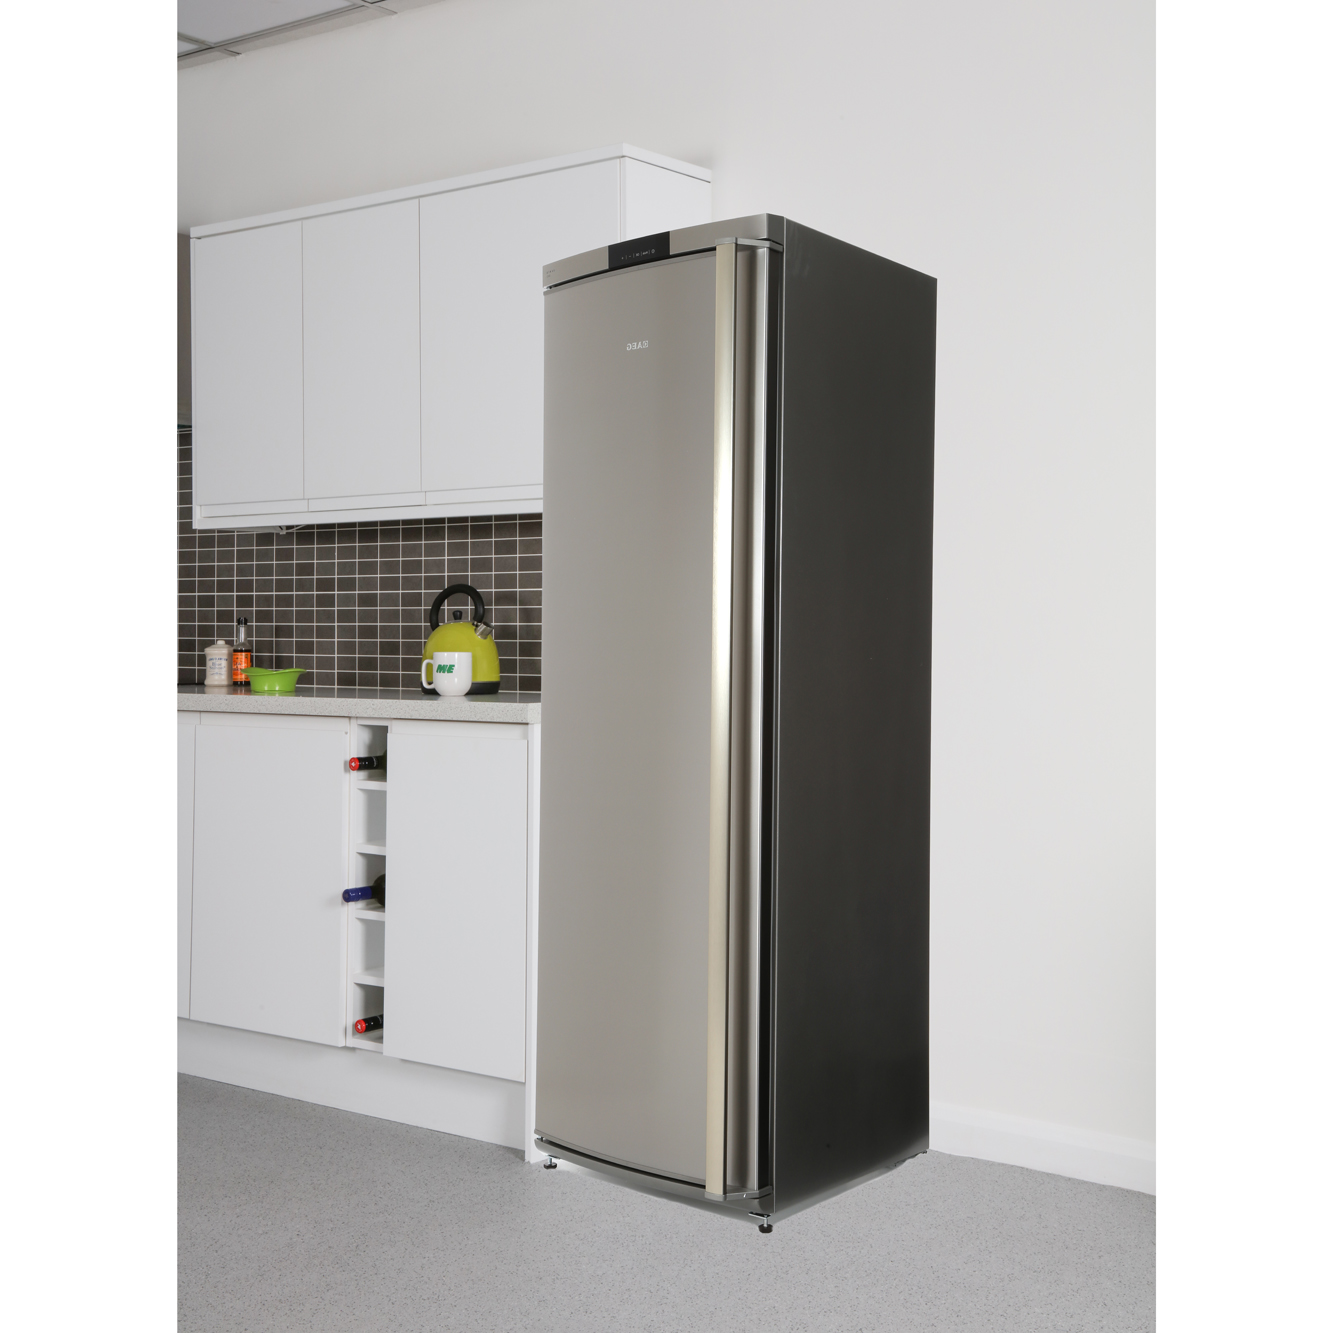 Buy Aeg S74010kdx0 Tall Larder Fridge Stainless Steel